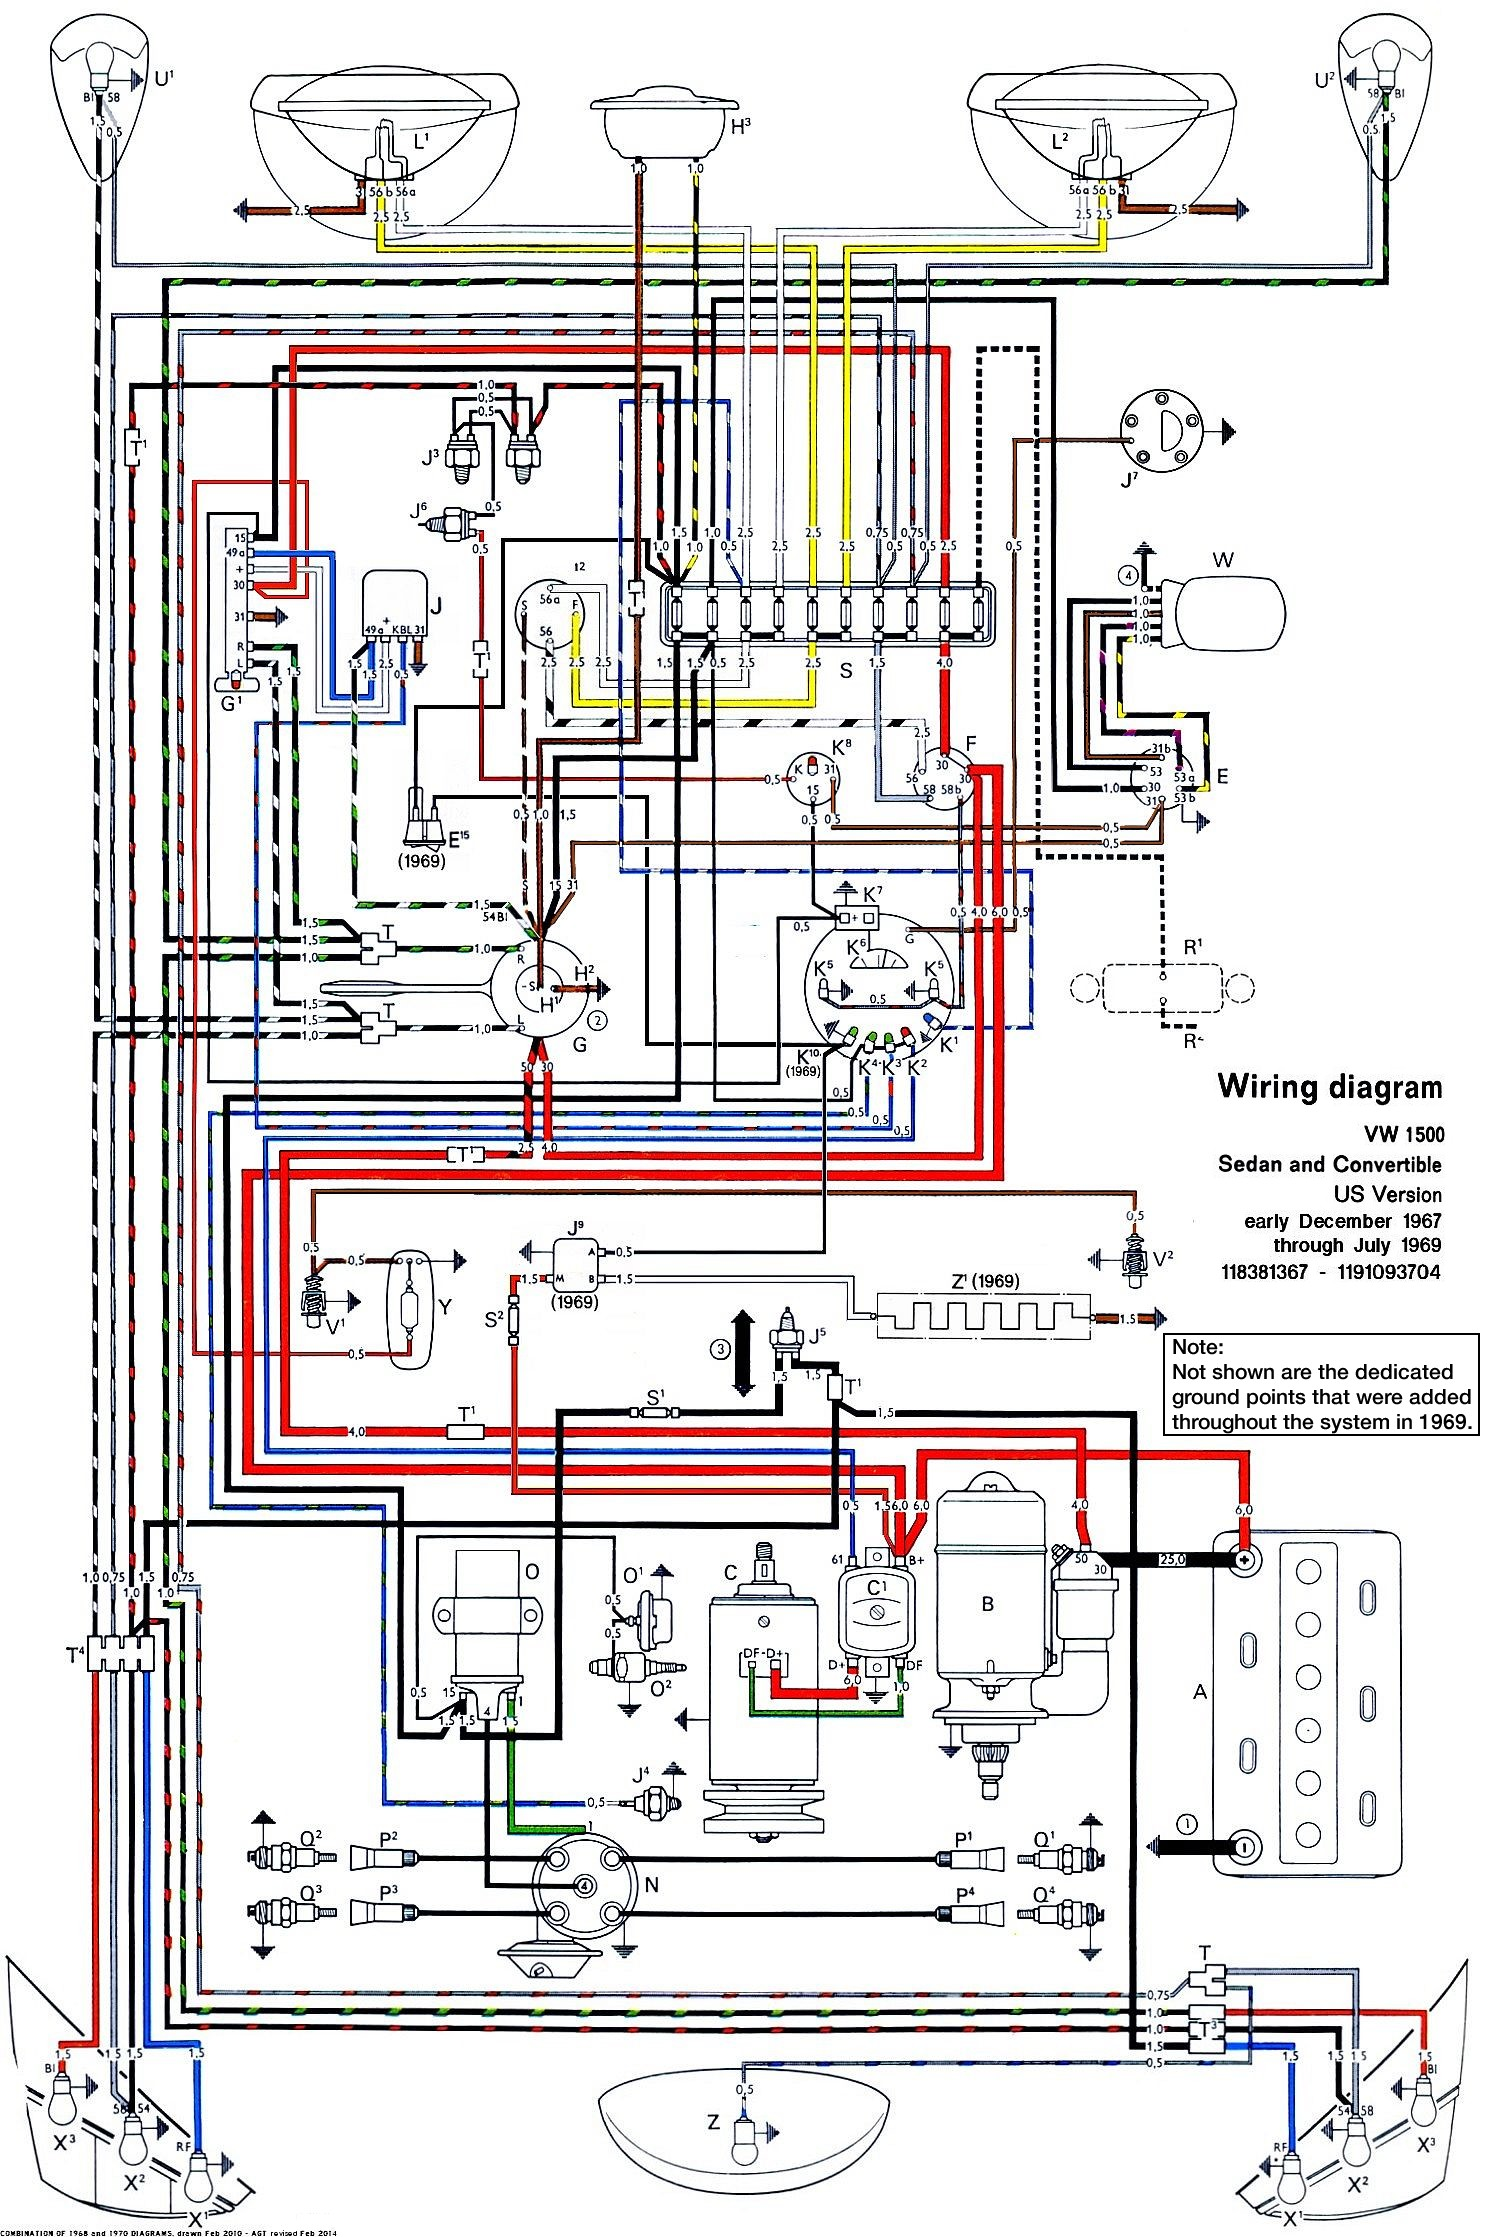 1971 Vw Bug Ignition Coil Wiring Diagram Library Beetle In Addition 74 Super 1963 Type 1 Get Free Image About Alternator